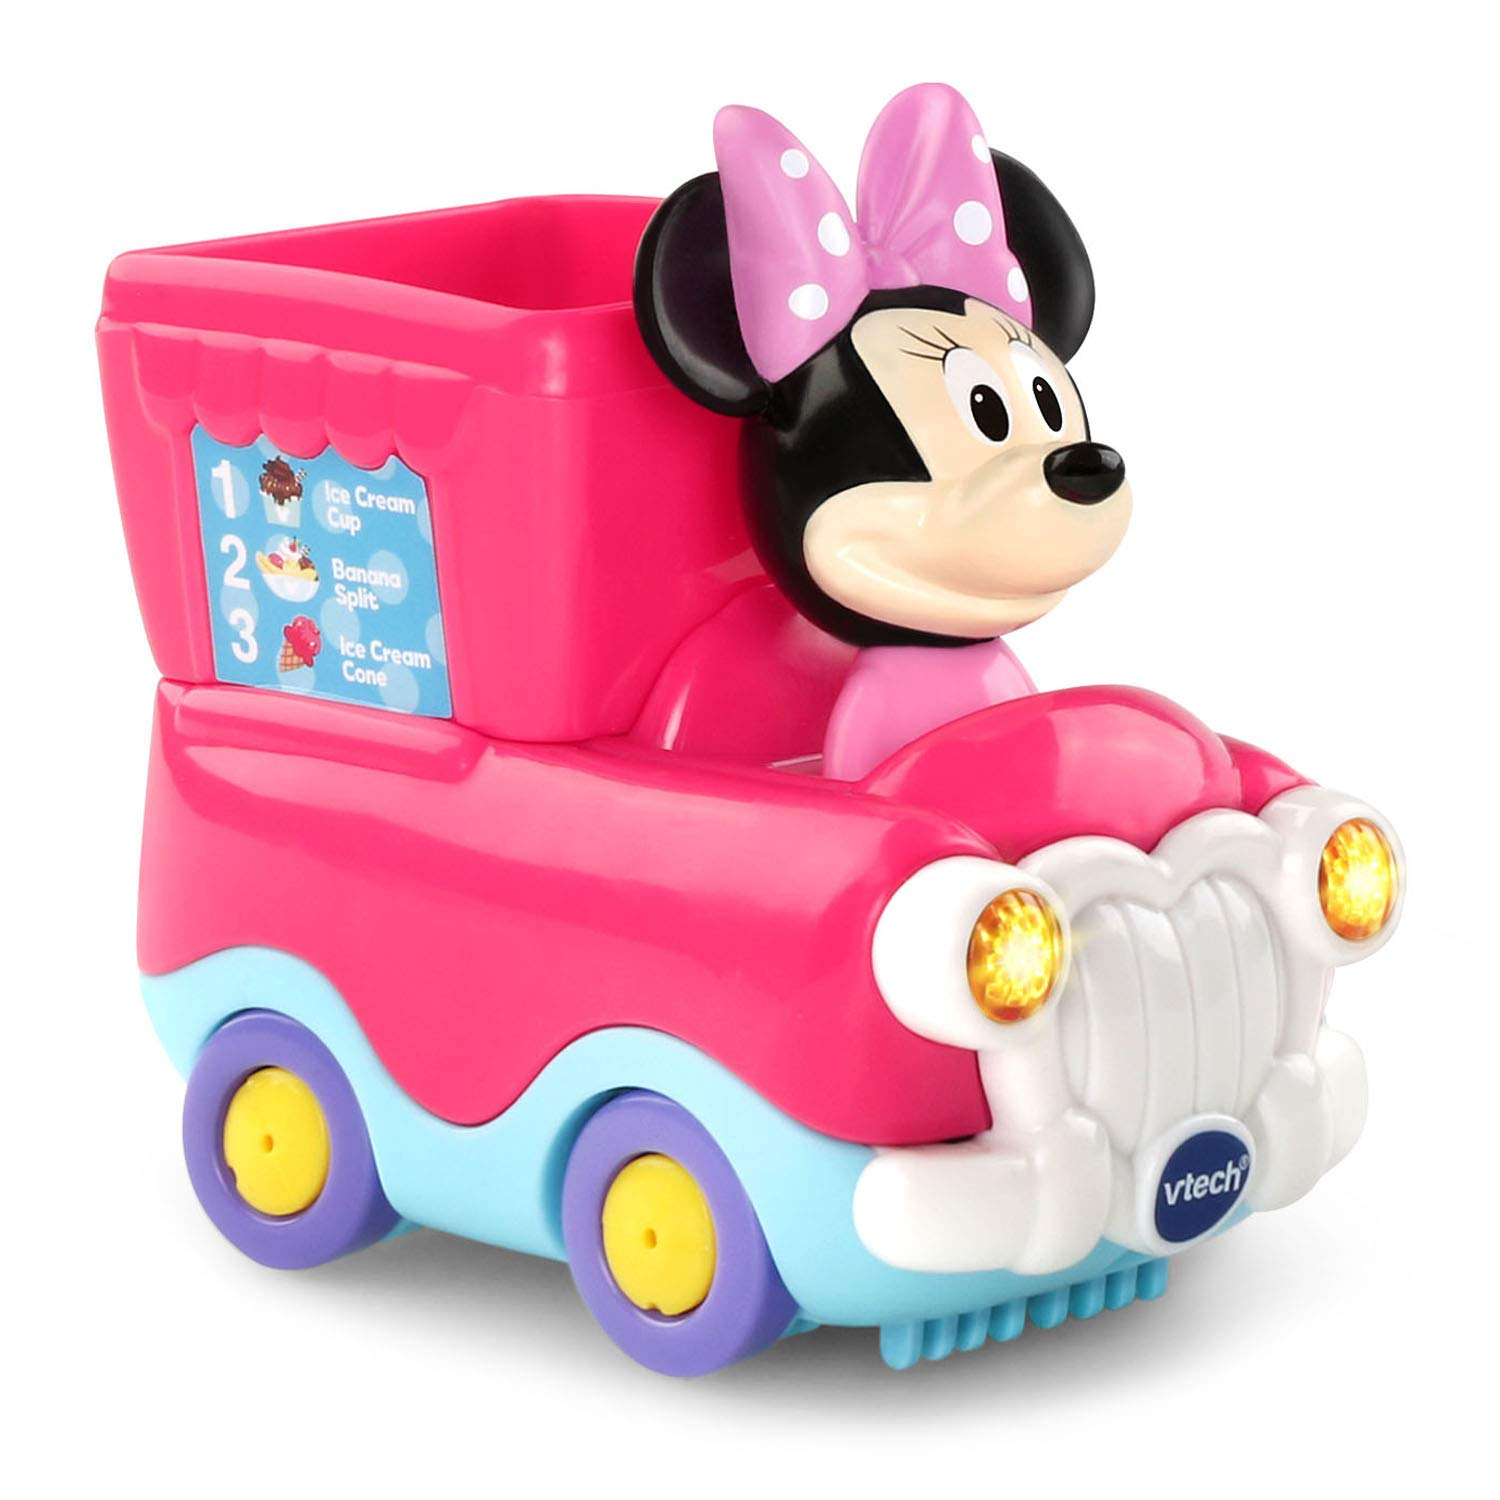 VTech Go! Go! Smart Wheels Minnie Mouse Ice Cream Parlor by VTech (Image #2)